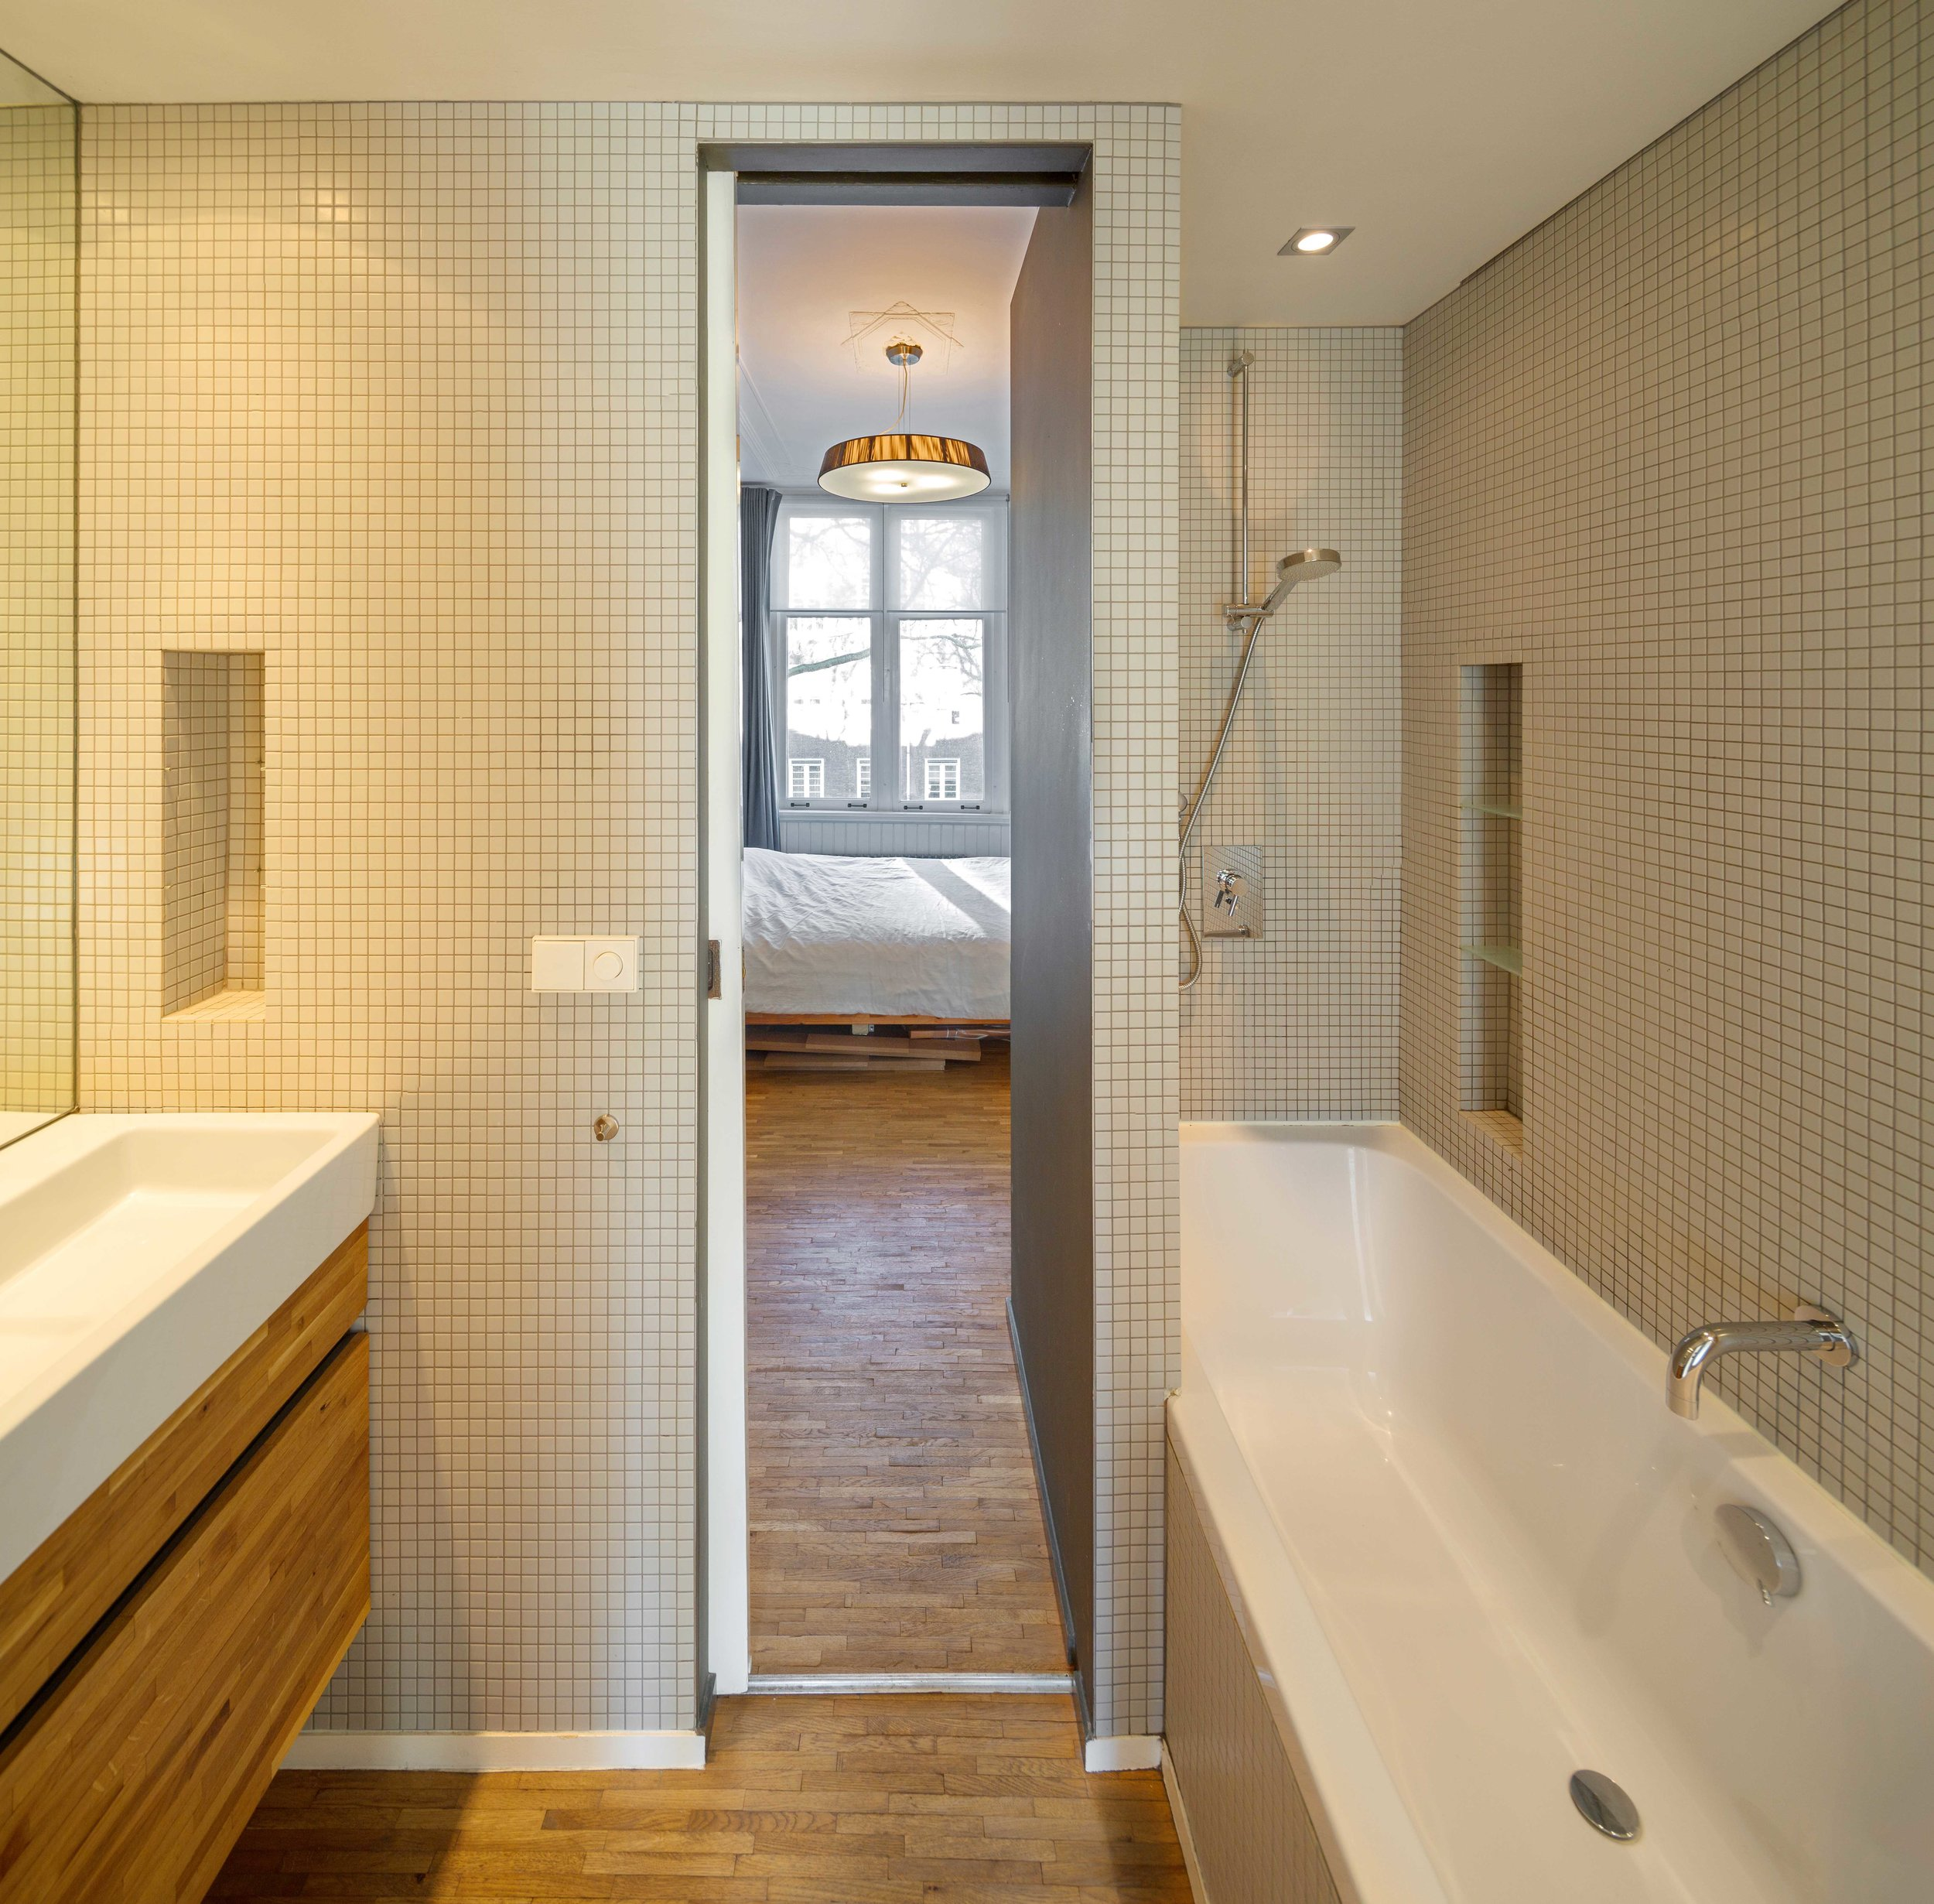 the bathroom is accessible from both siides, adding to the flexibility of the home